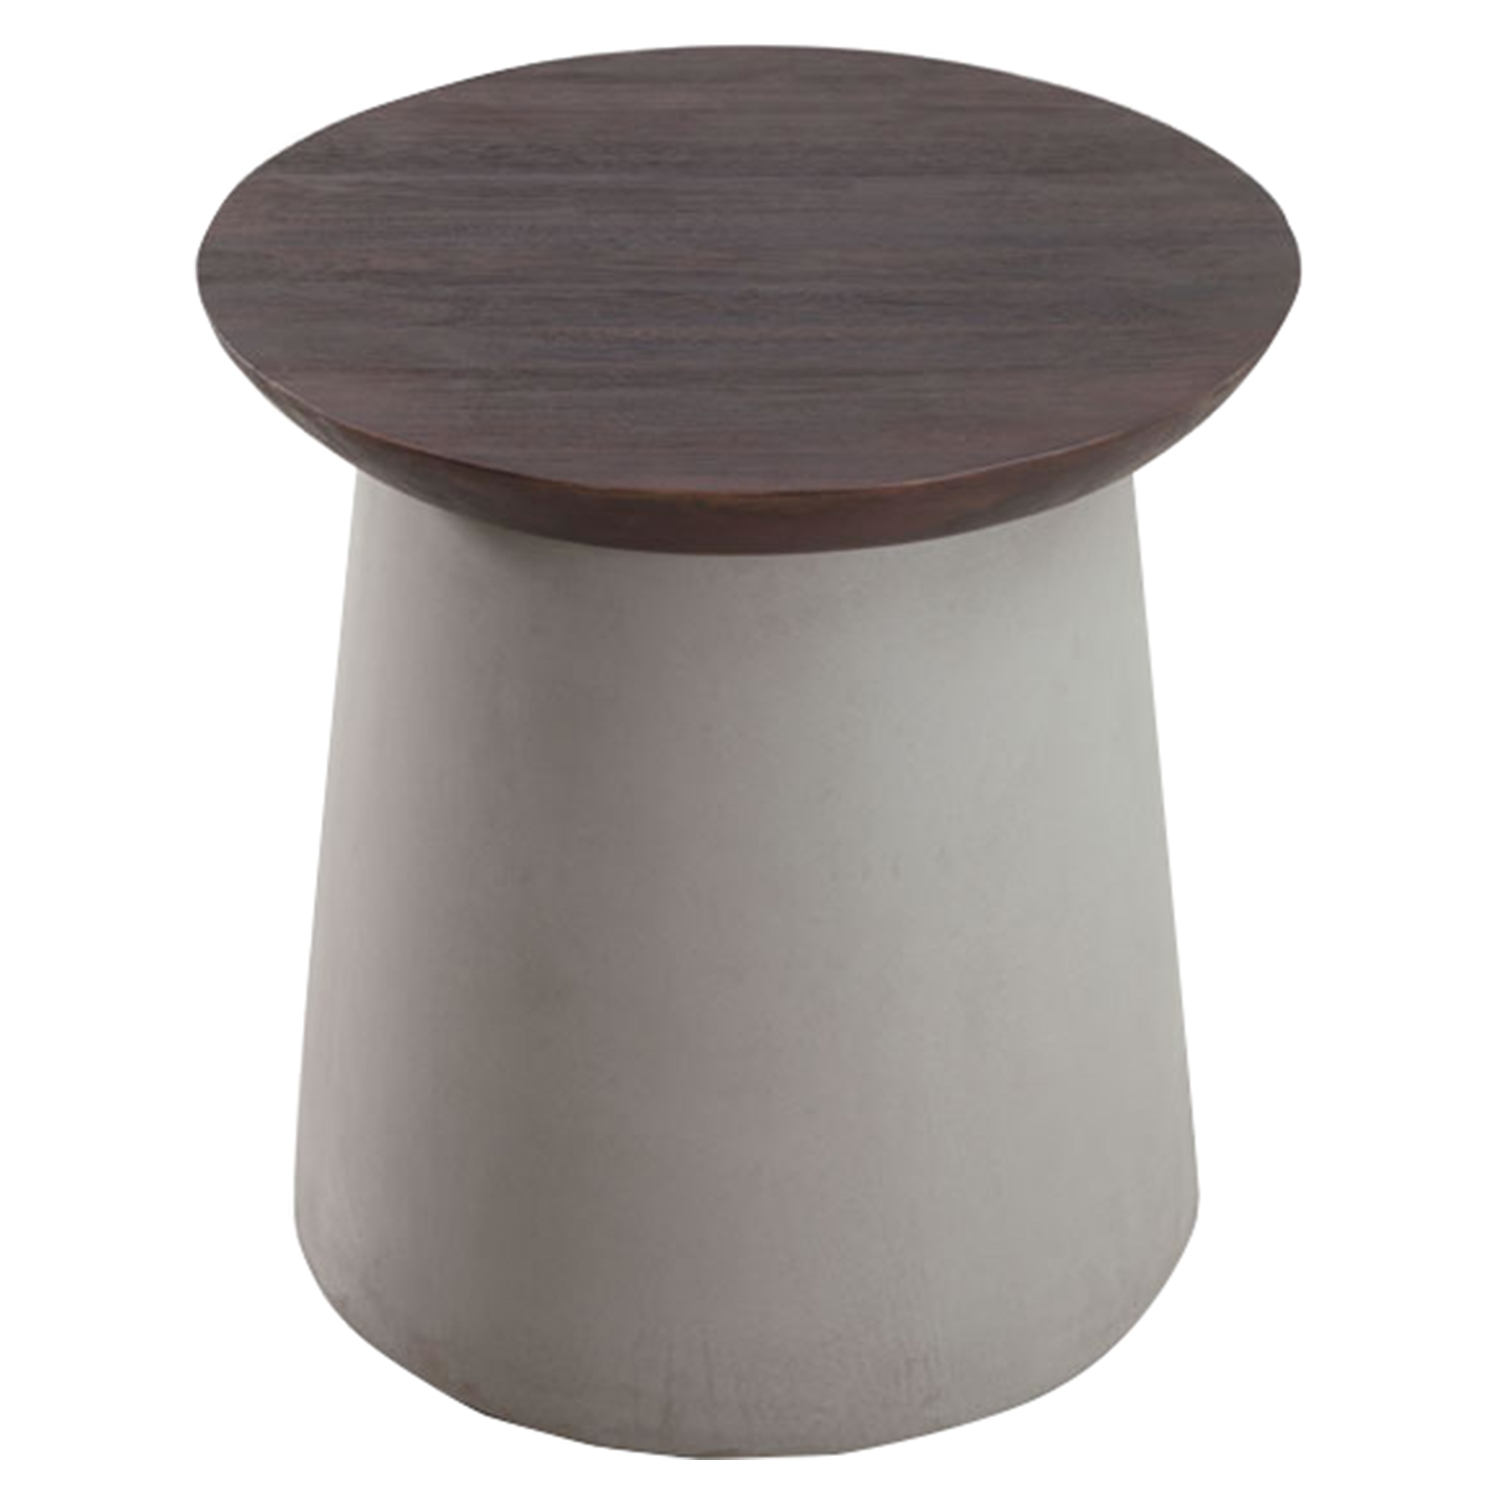 Henge Side Table - Cement and Walnut